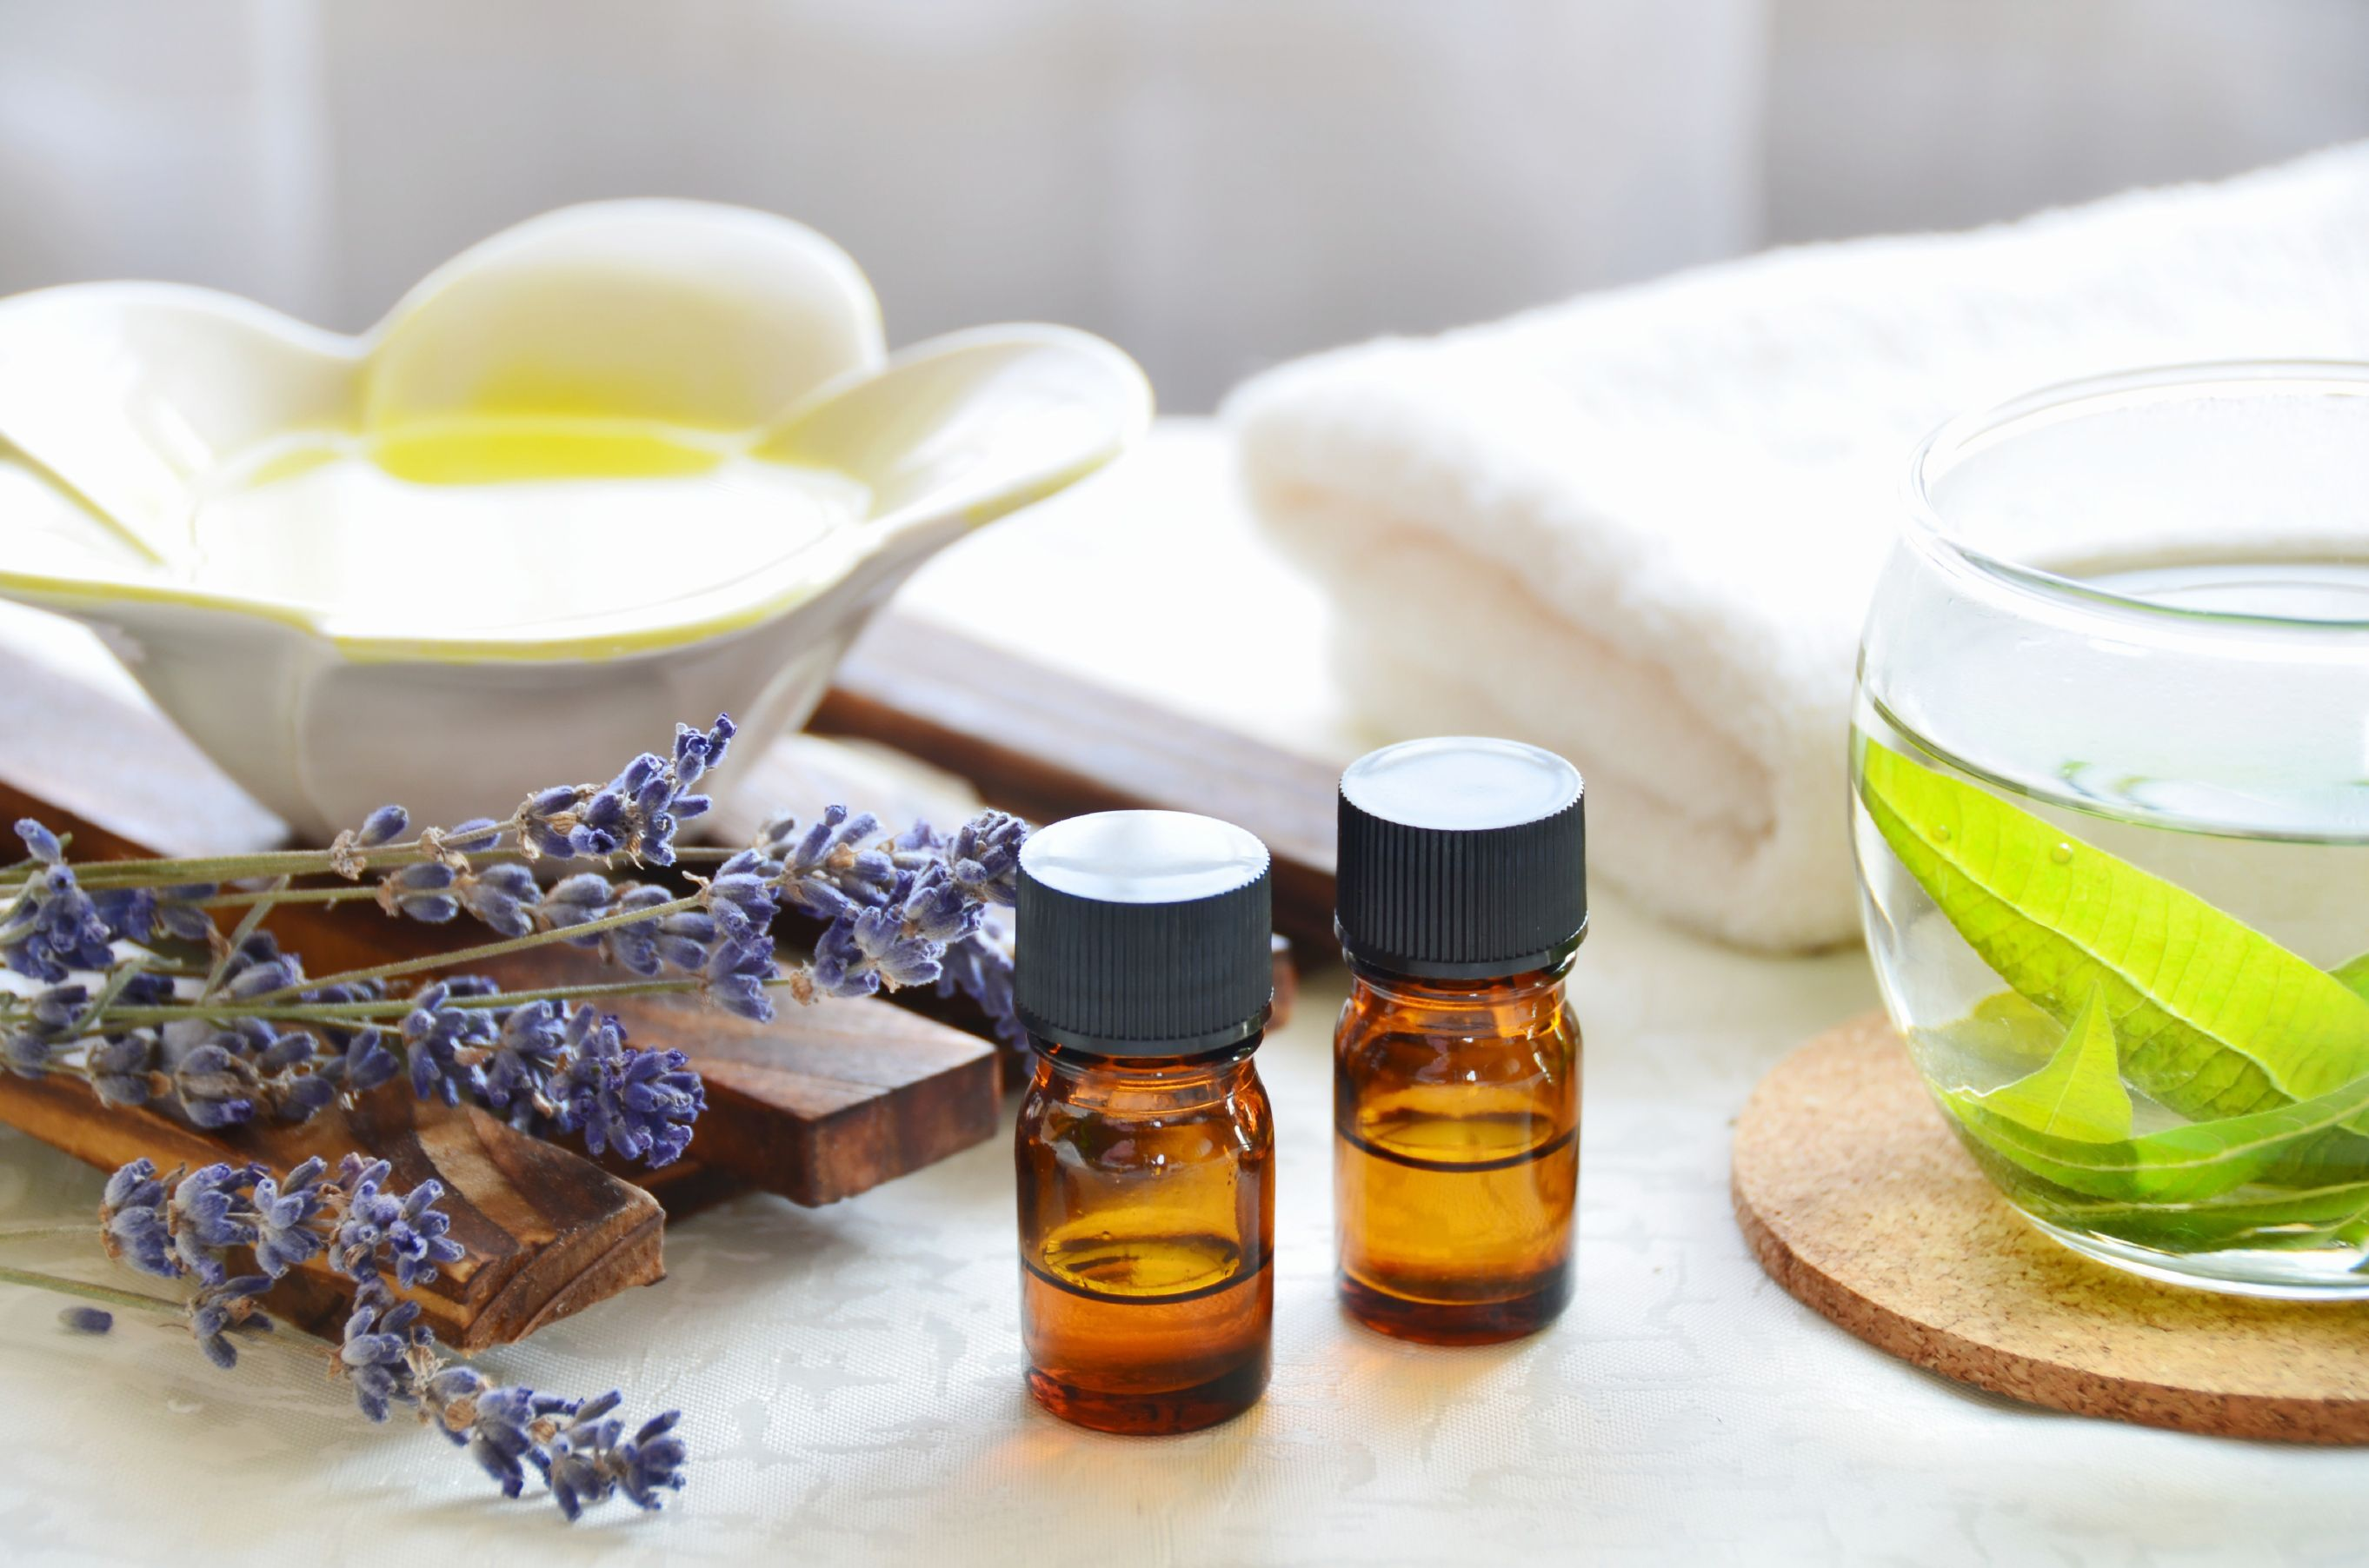 lierre massage supplies aromatherapy